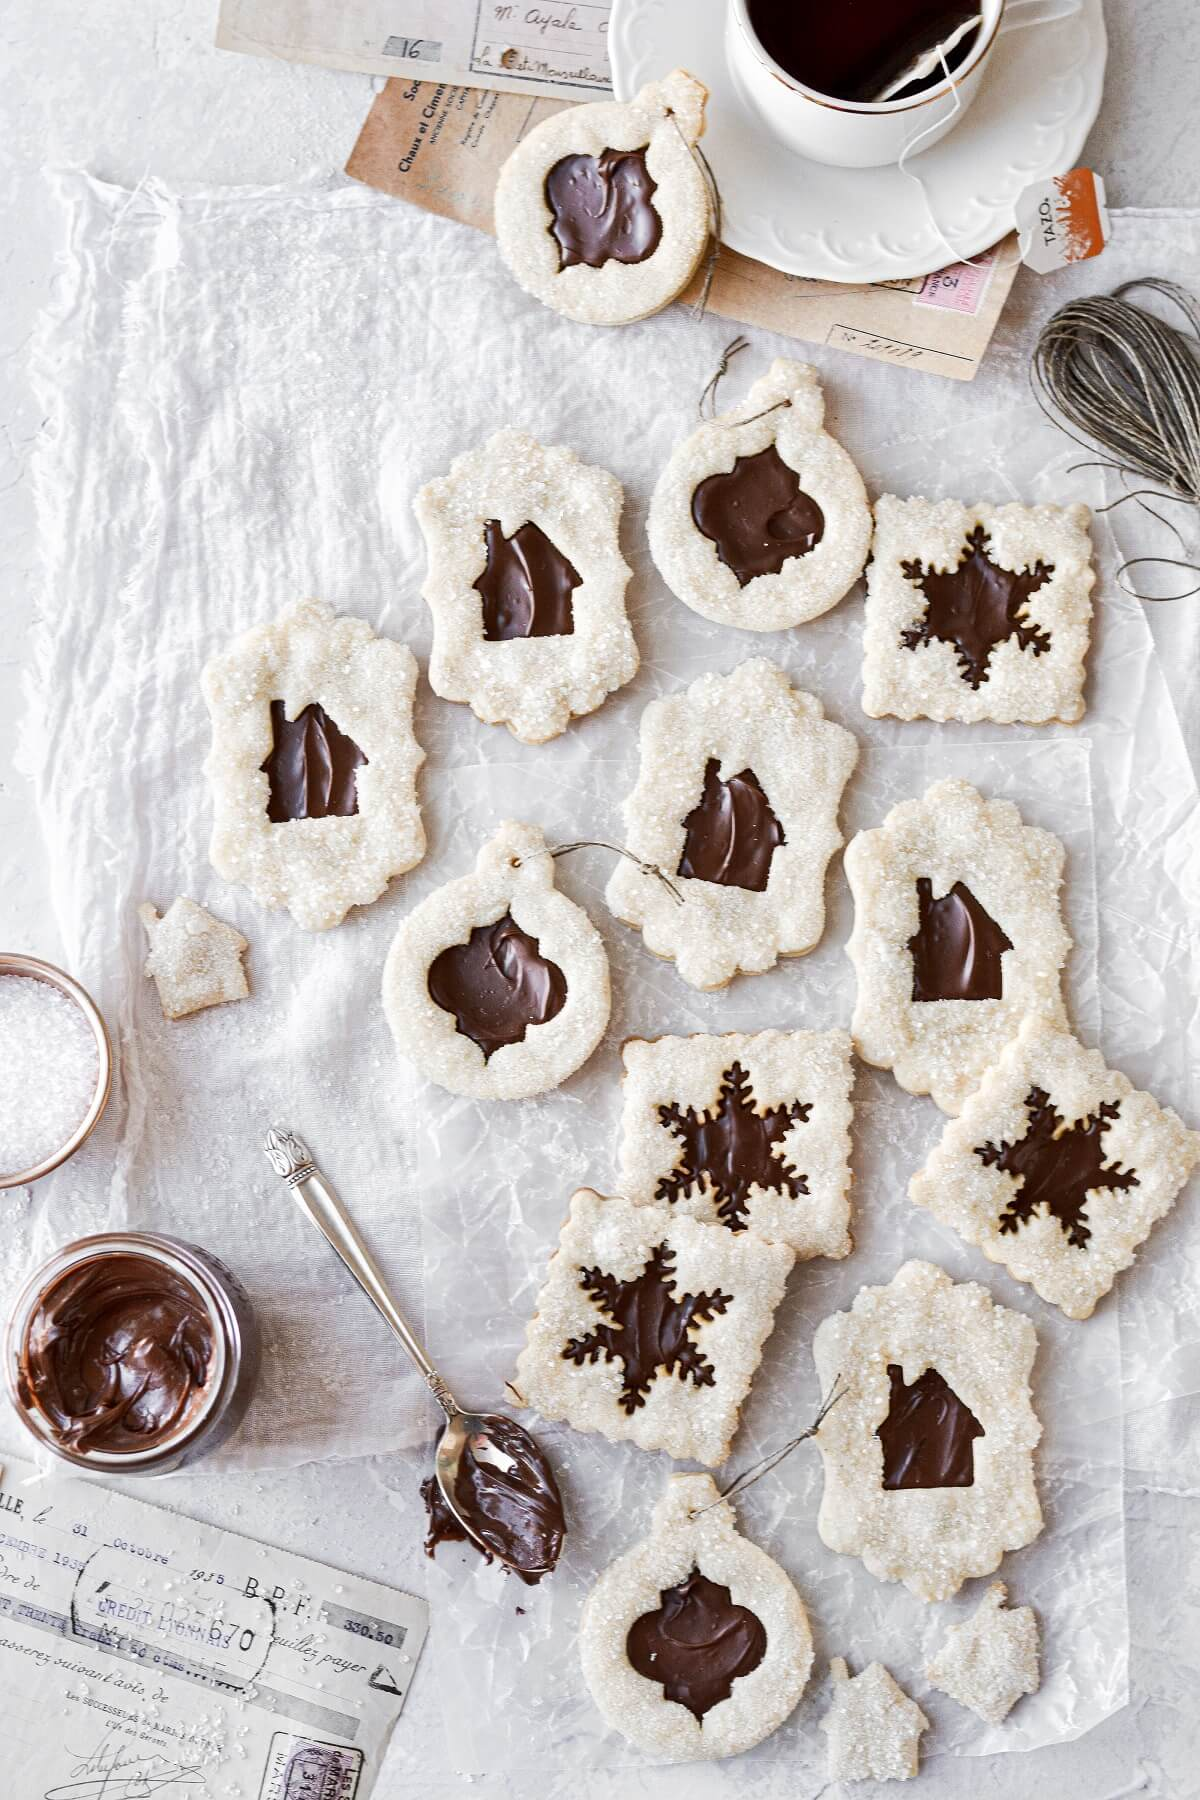 Chocolate hazelnut linzer cookies, with a cup of hot tea.